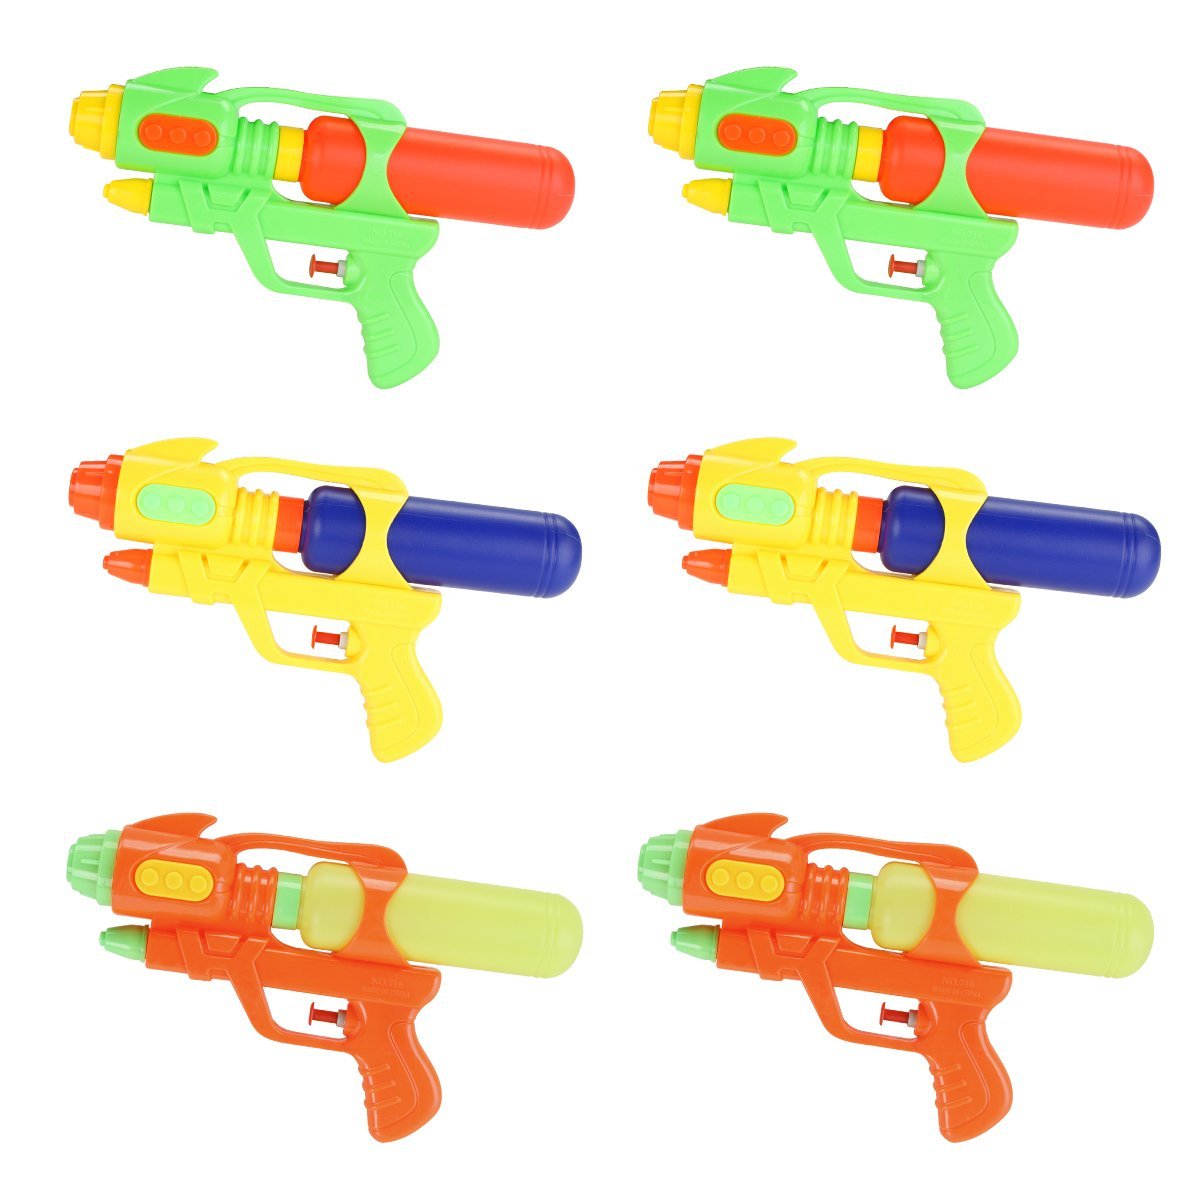 Fun-Here Pistole ad acqua 23cm 6 confezioni per bambini Adulti Pistola ad acqua multicolore in piscina per feste Favori da bagno Indoor Outdoor Fun Summer Toy (confezione da 6)